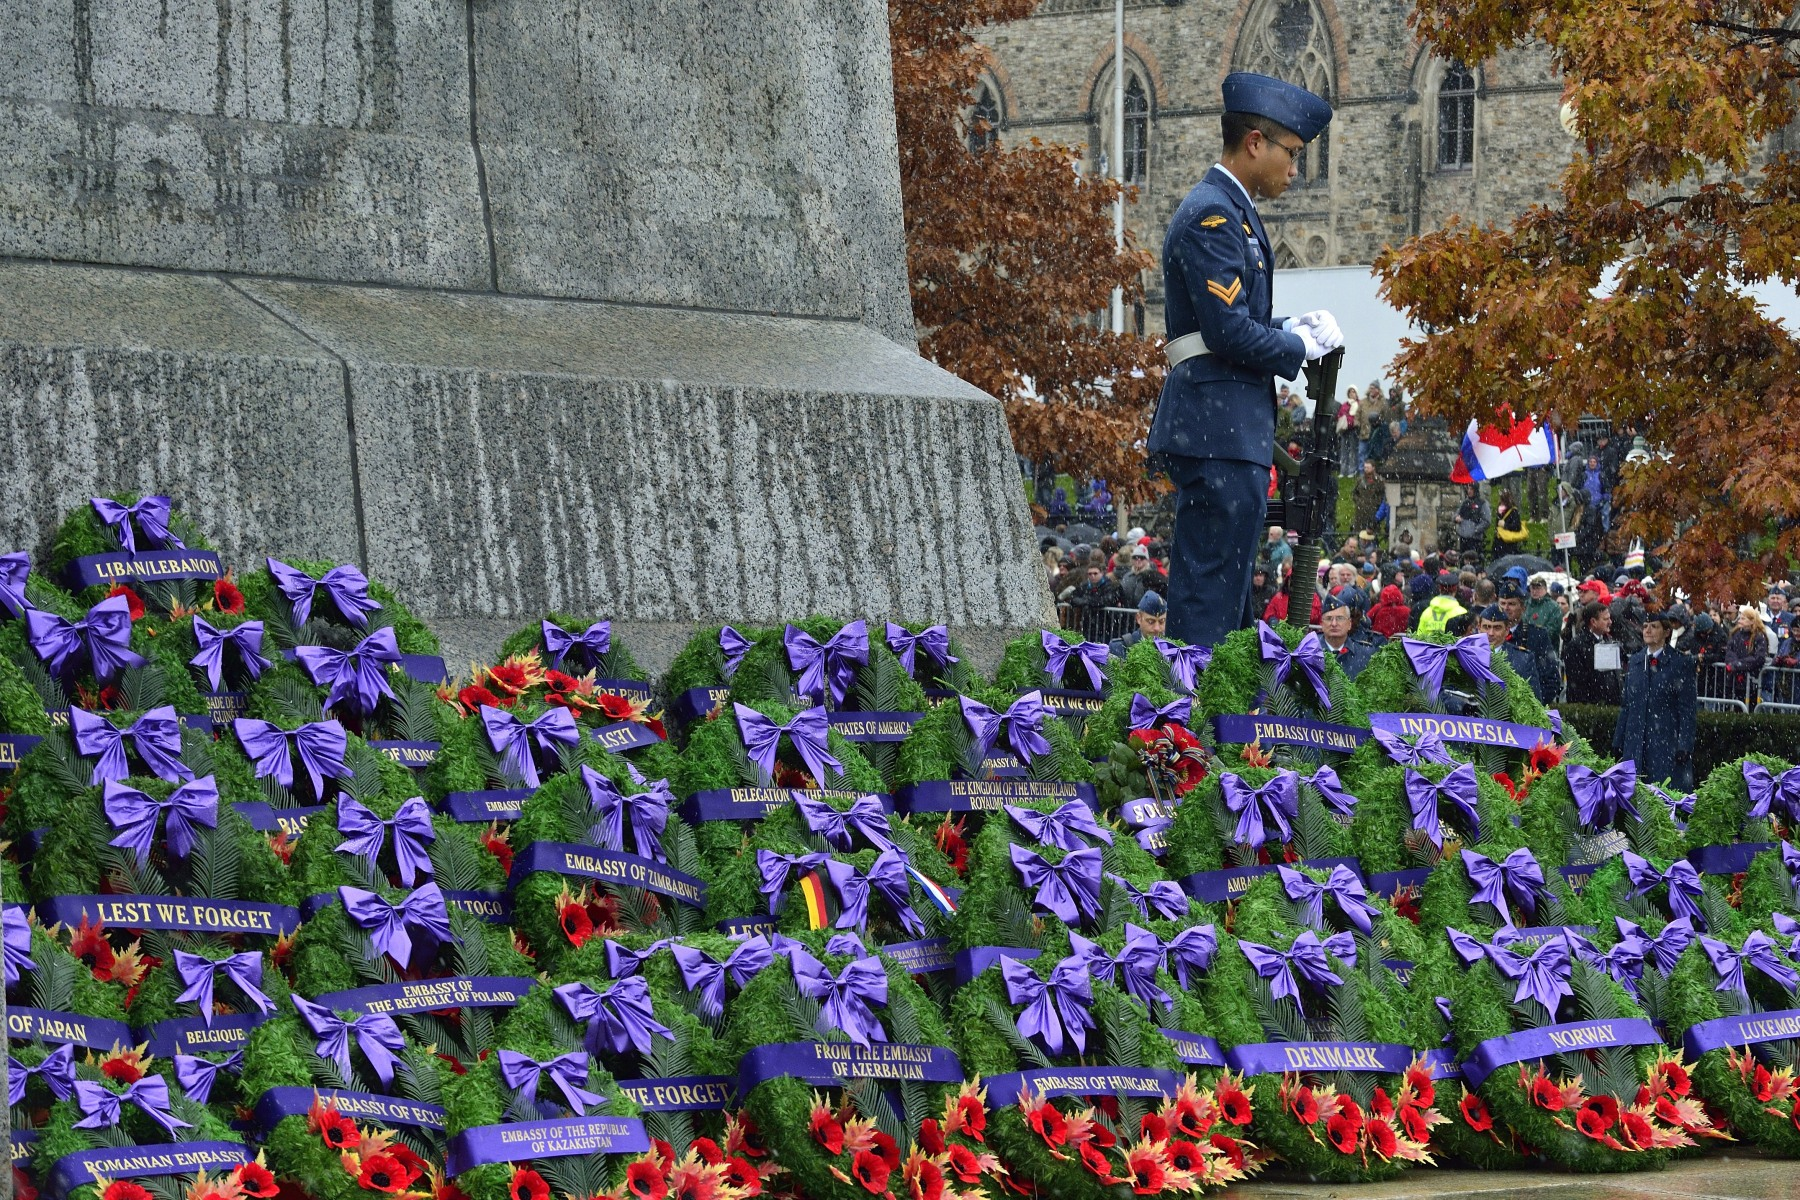 Each year, in addition to dignitaries, parliamentarians and military officials, various groups, organisations ans individuals also lay wreath to never forget.